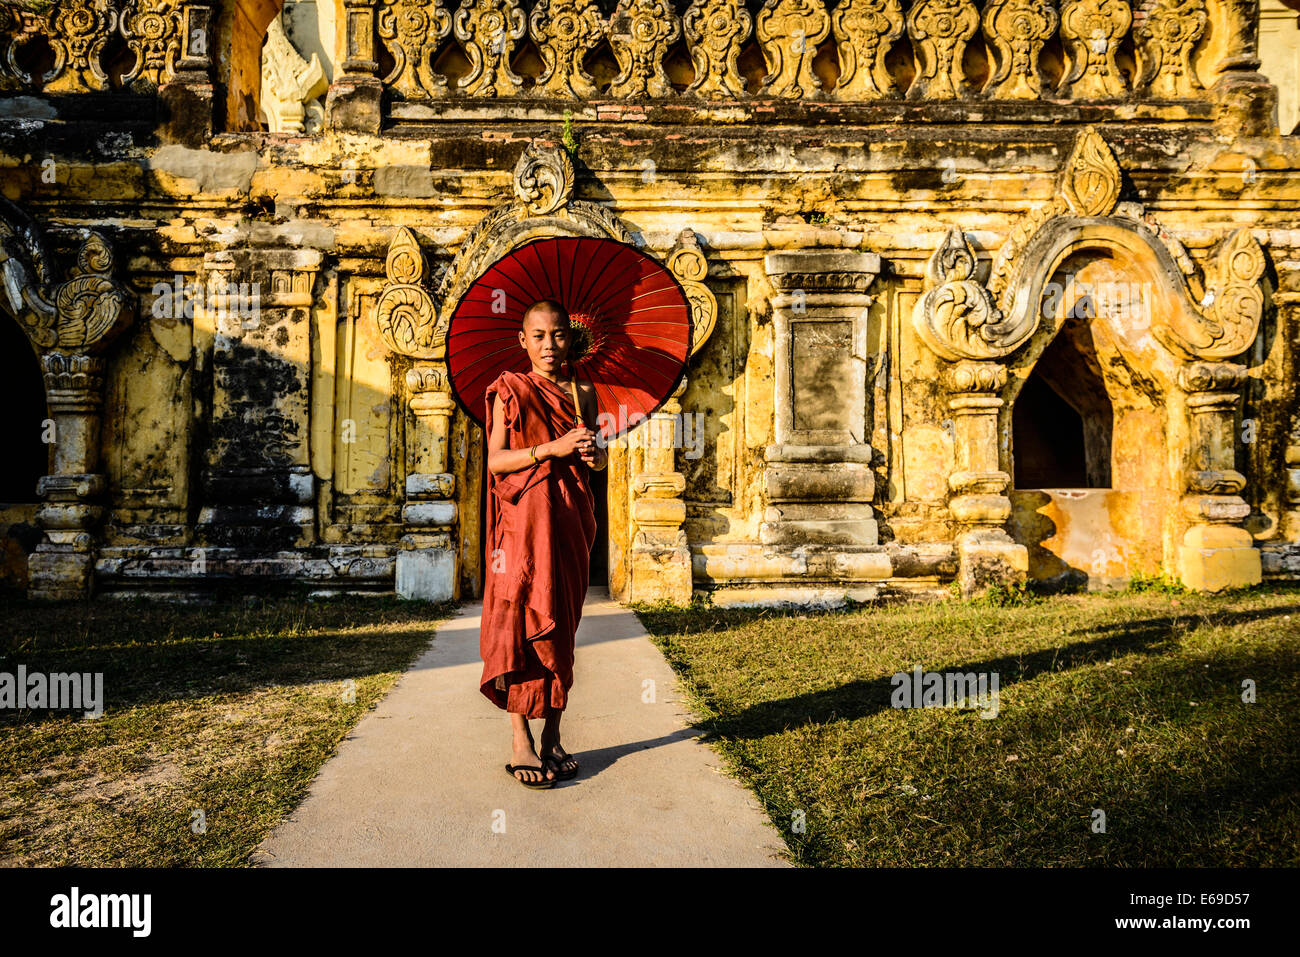 Asian man carrying umbrella by ornate temple - Stock Image